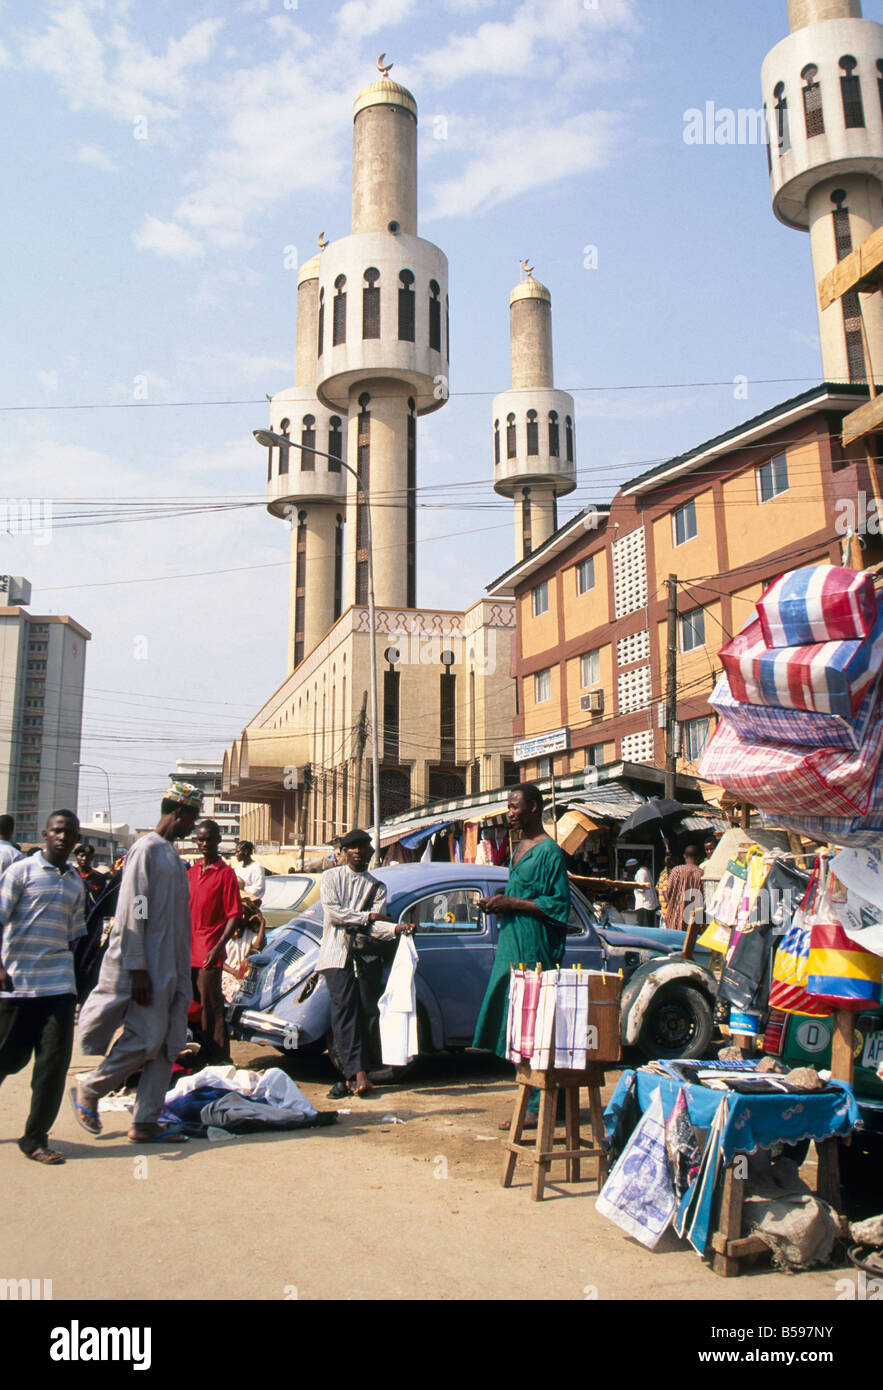 Mosque and people at a market in downtown Lagos Nigeria Africa - Stock Image